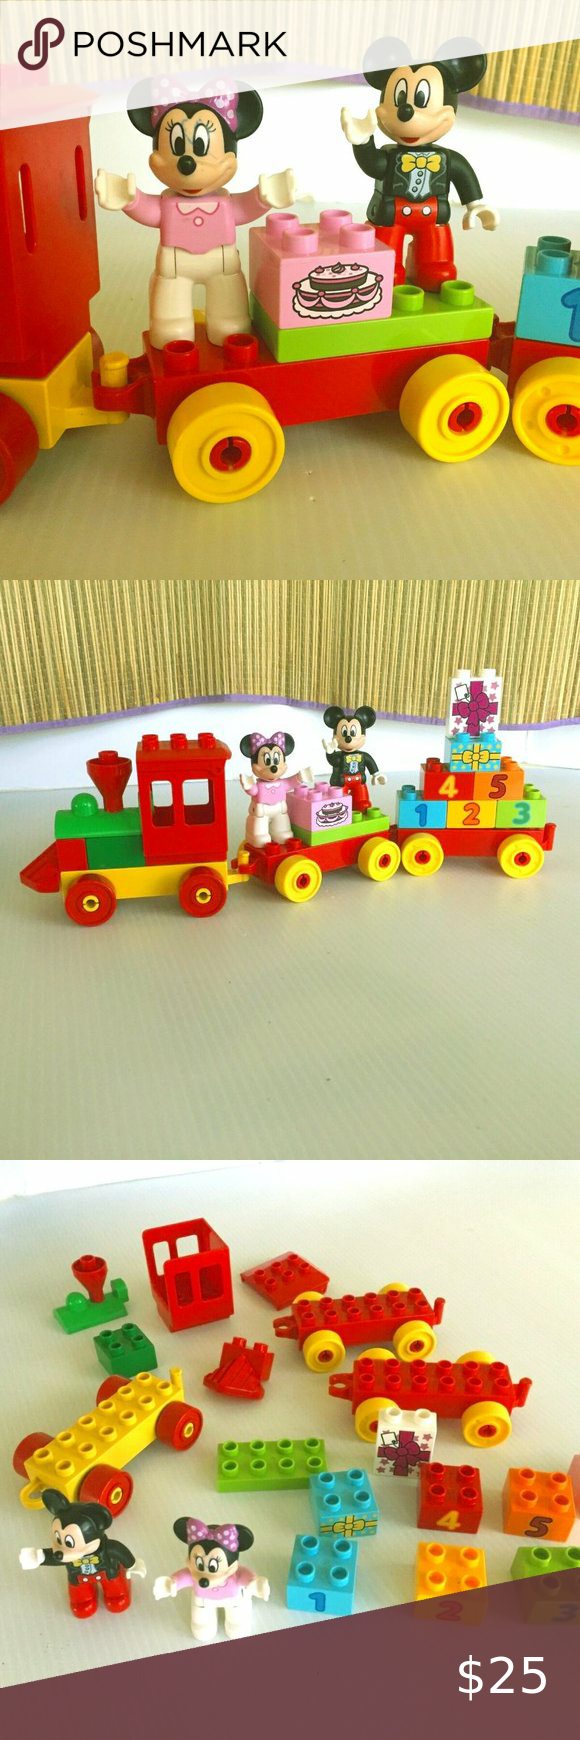 Lego Duplo Mickey And Minnie Mouse Birthday Train In 2020 Lego Duplo Minnie Mouse Birthday Lego For Kids